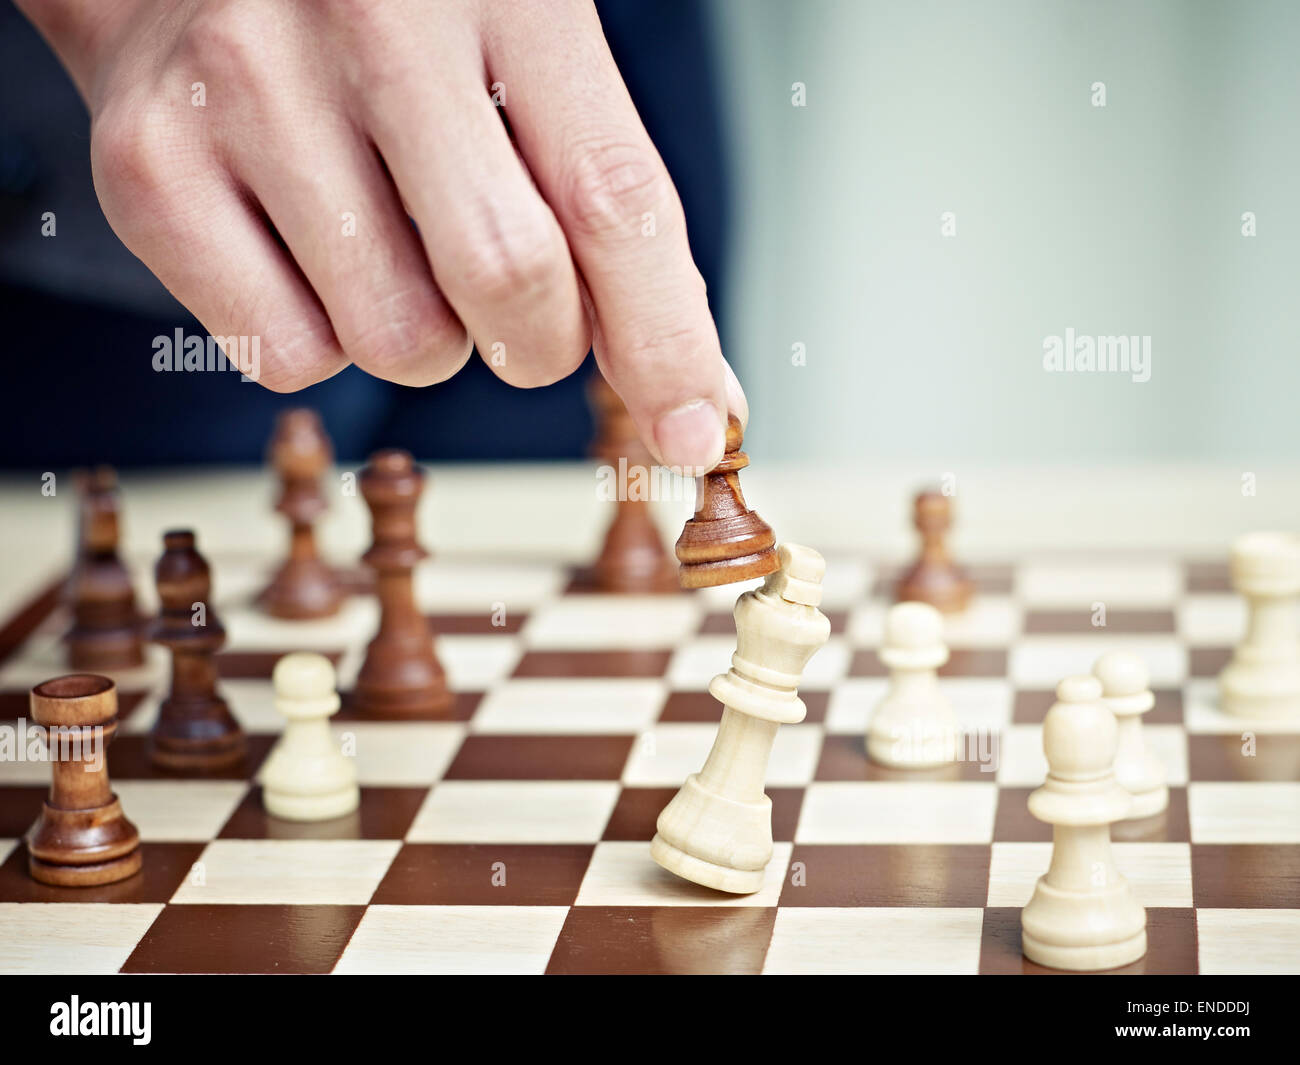 checkmate by a pawn - Stock Image